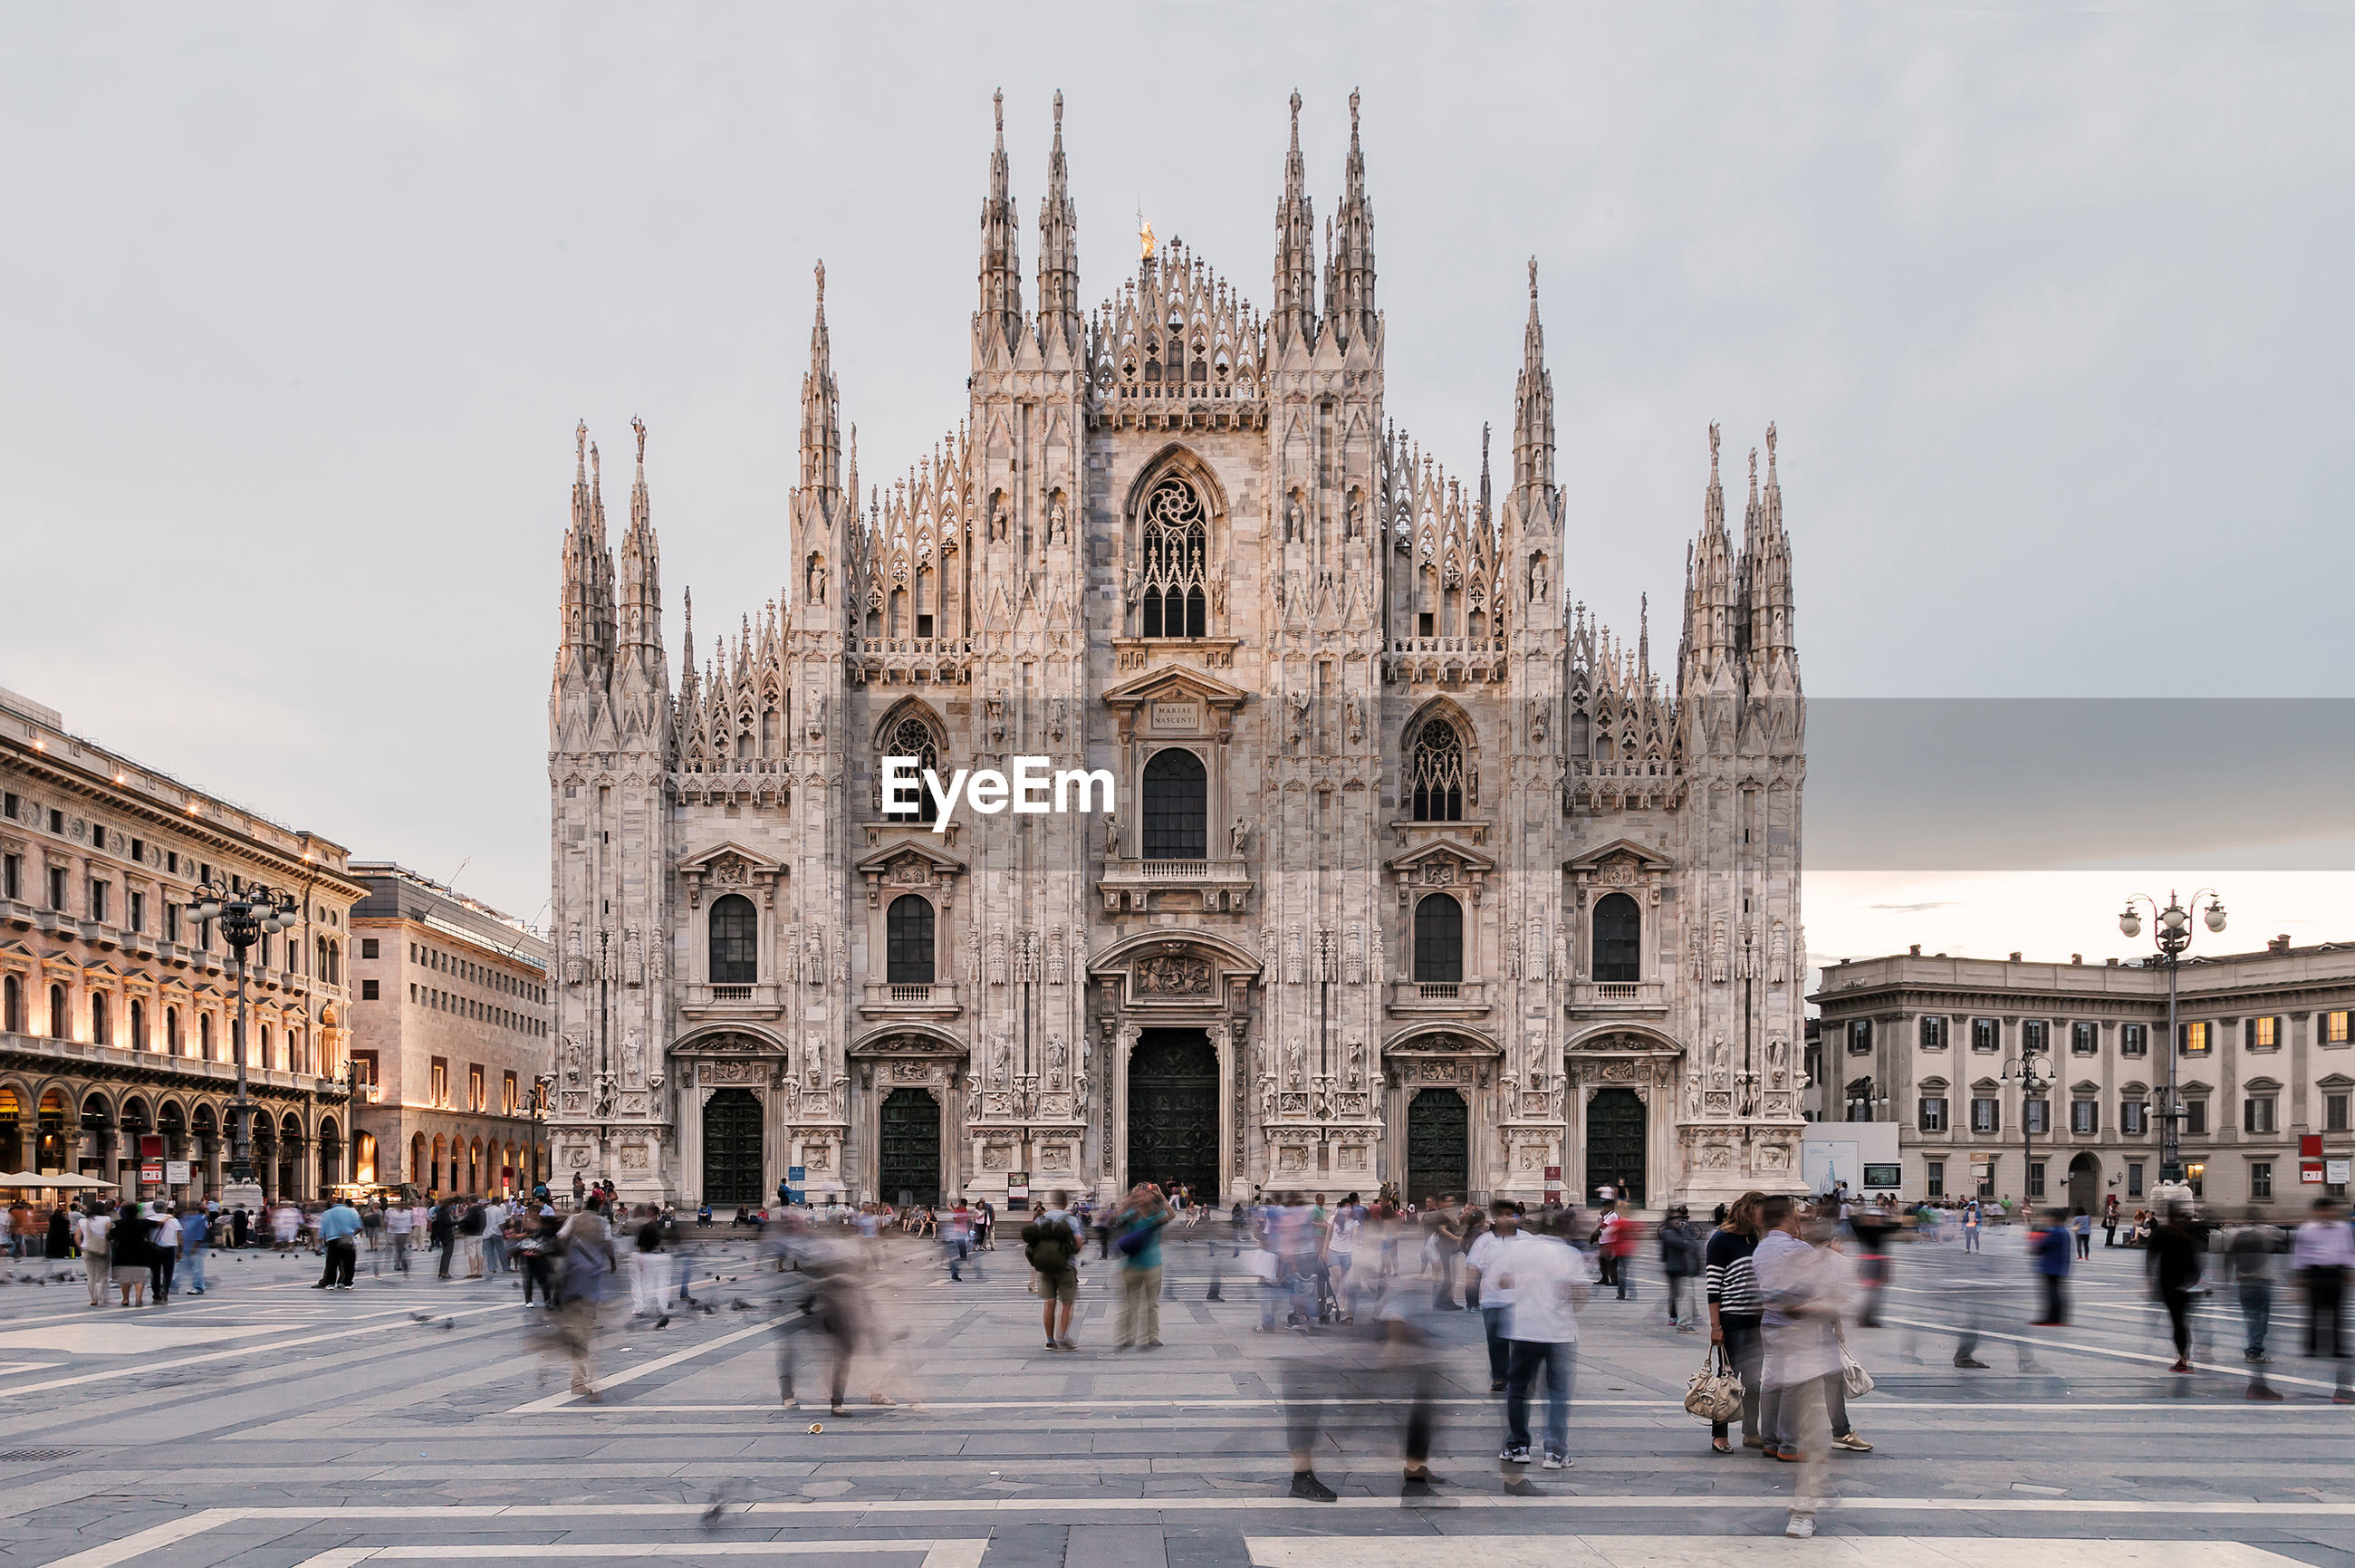 People at milan cathedral against sky